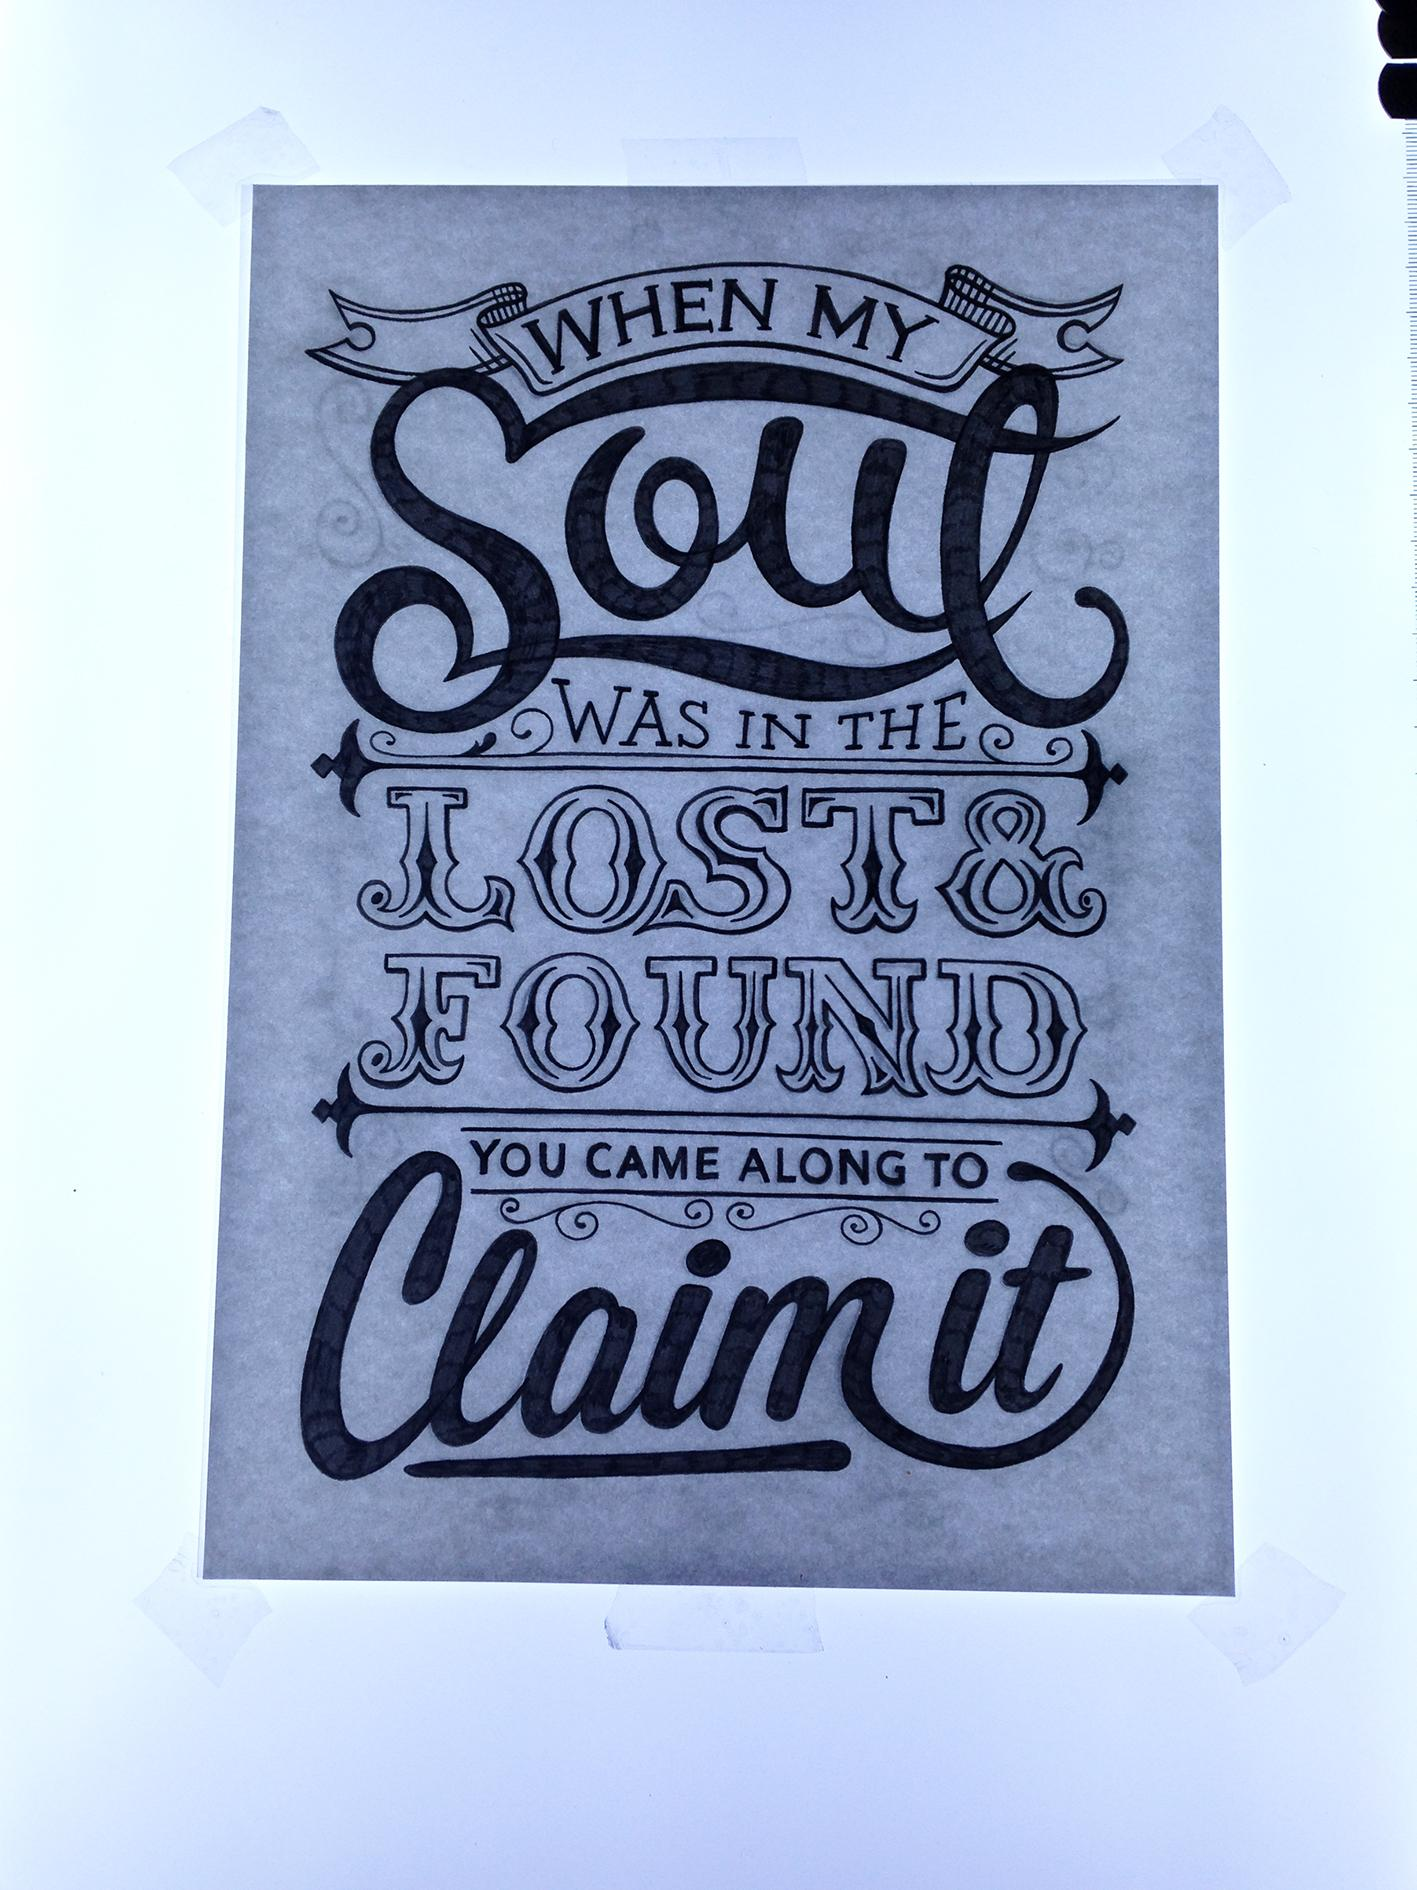 When my soul was in the lost and found... - image 11 - student project